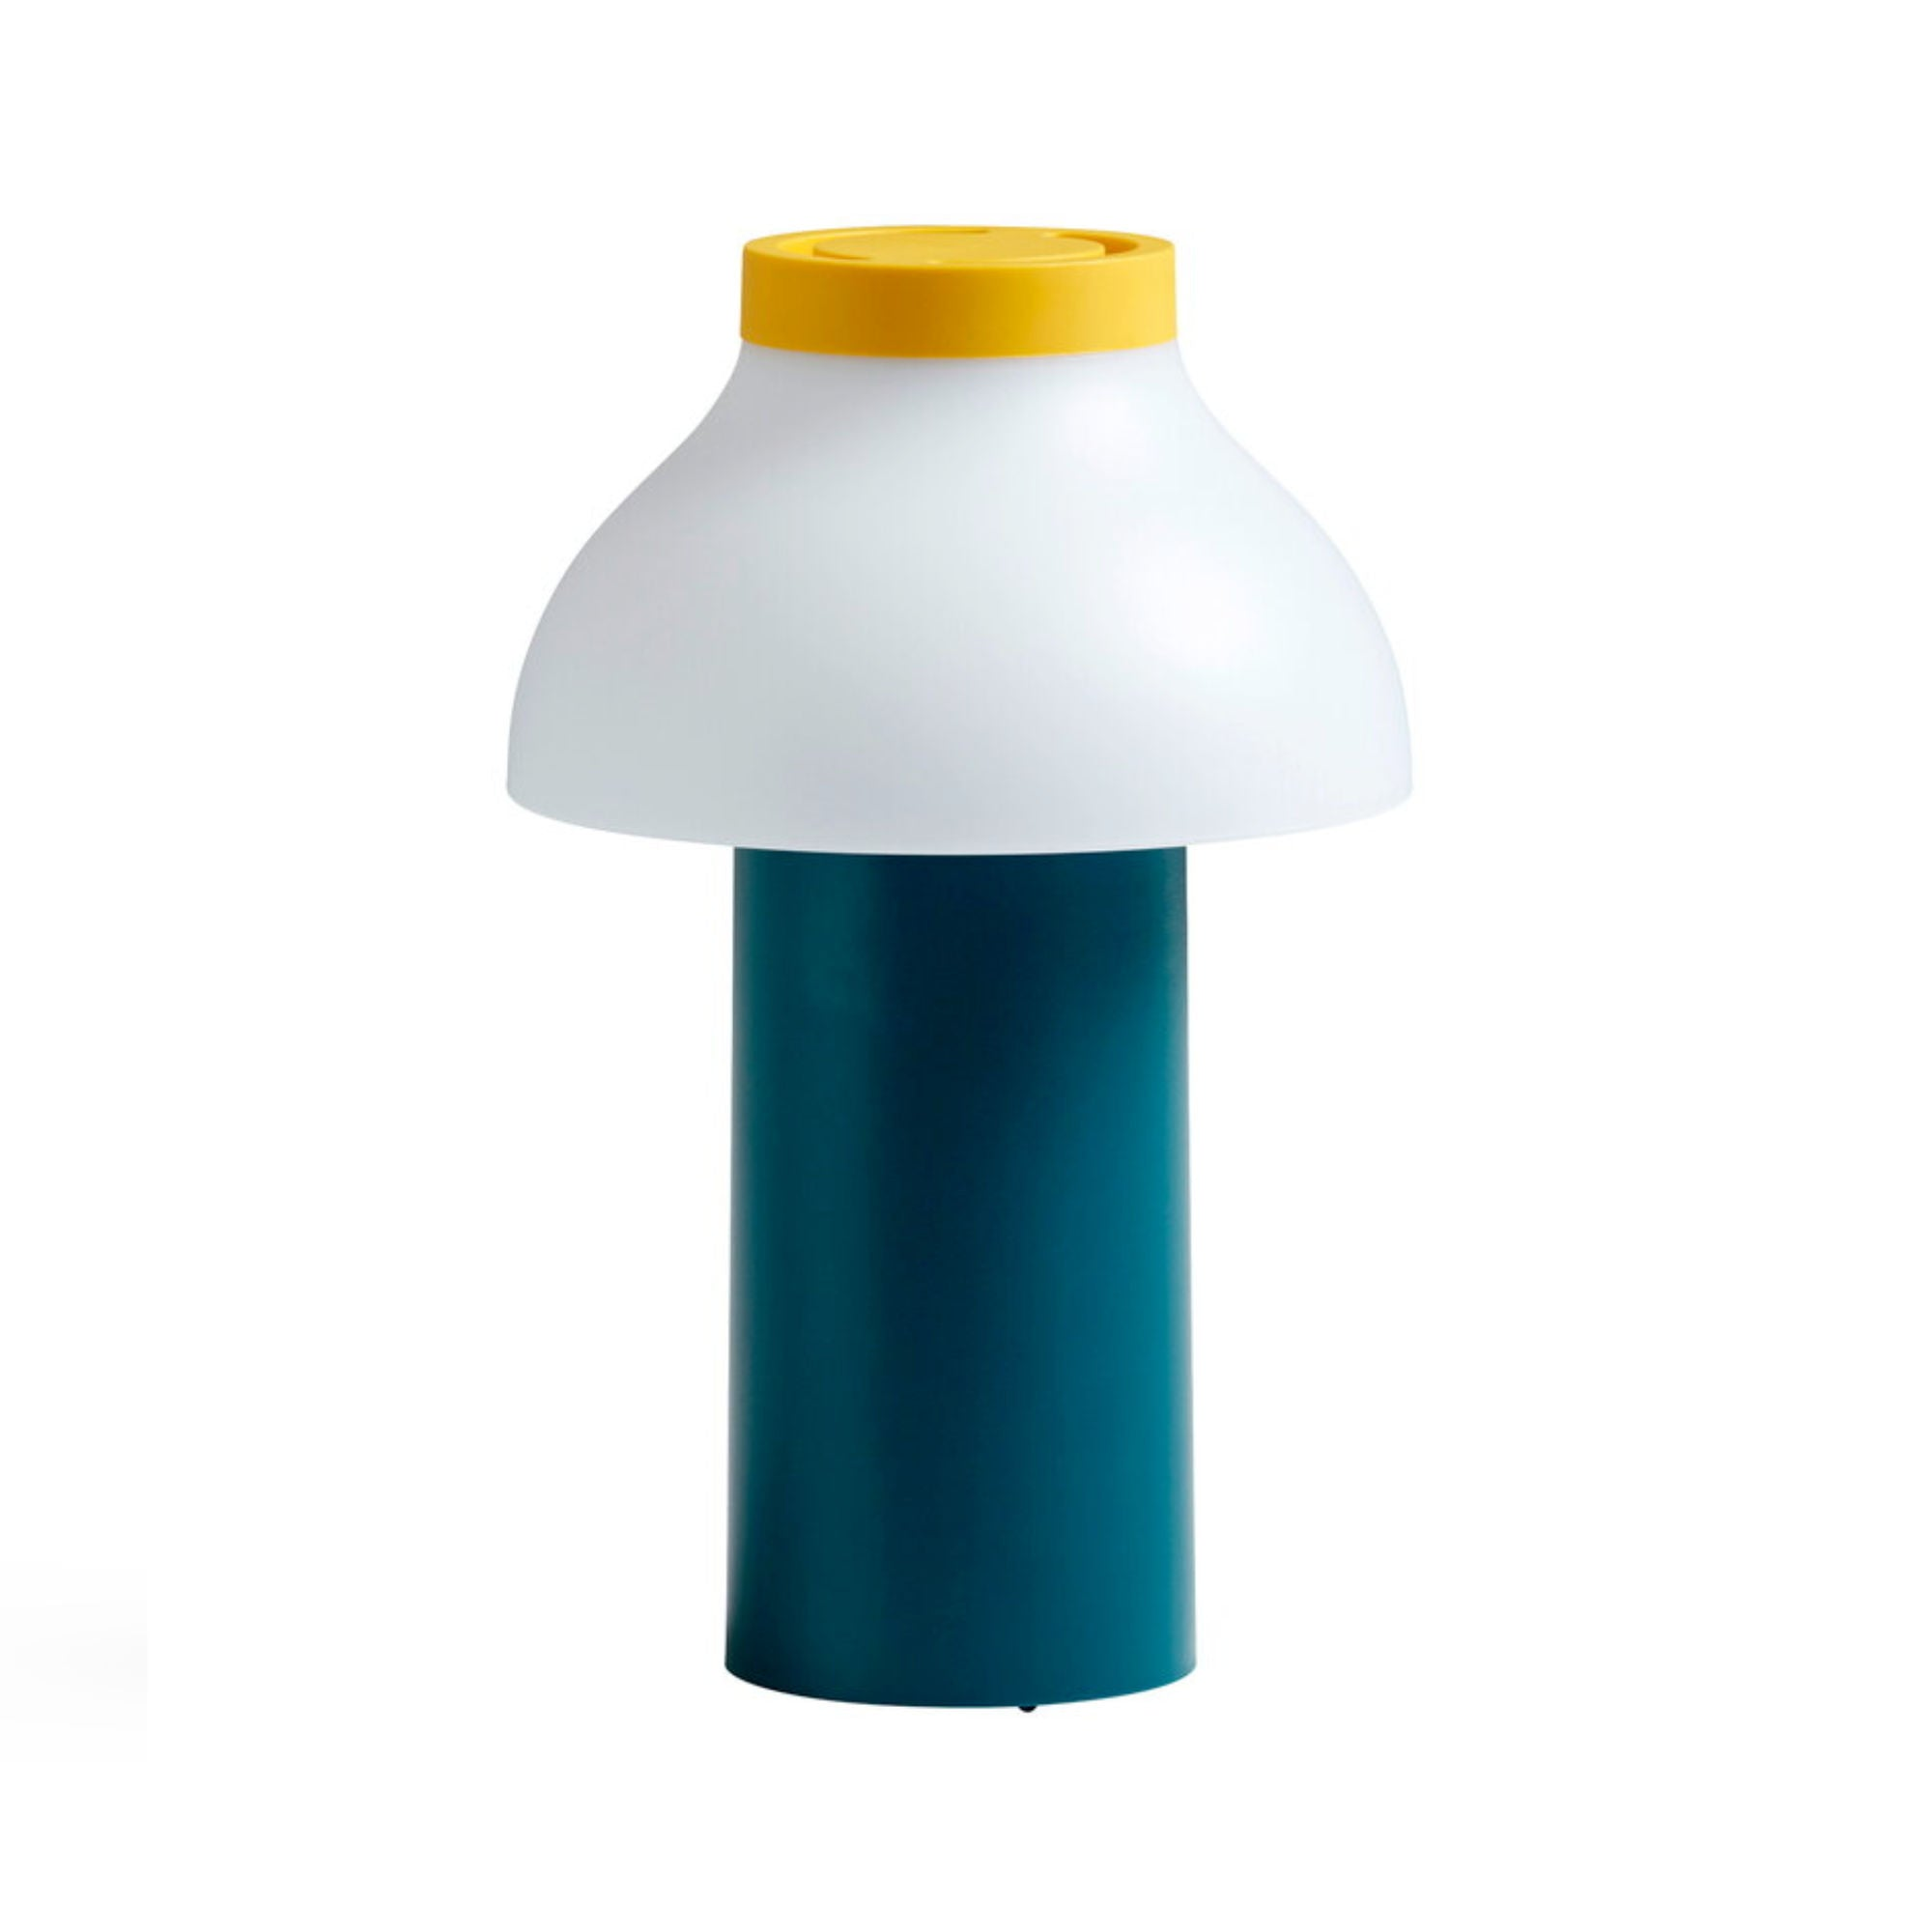 Hay PC Portable lamp, ocean green (outdoor)